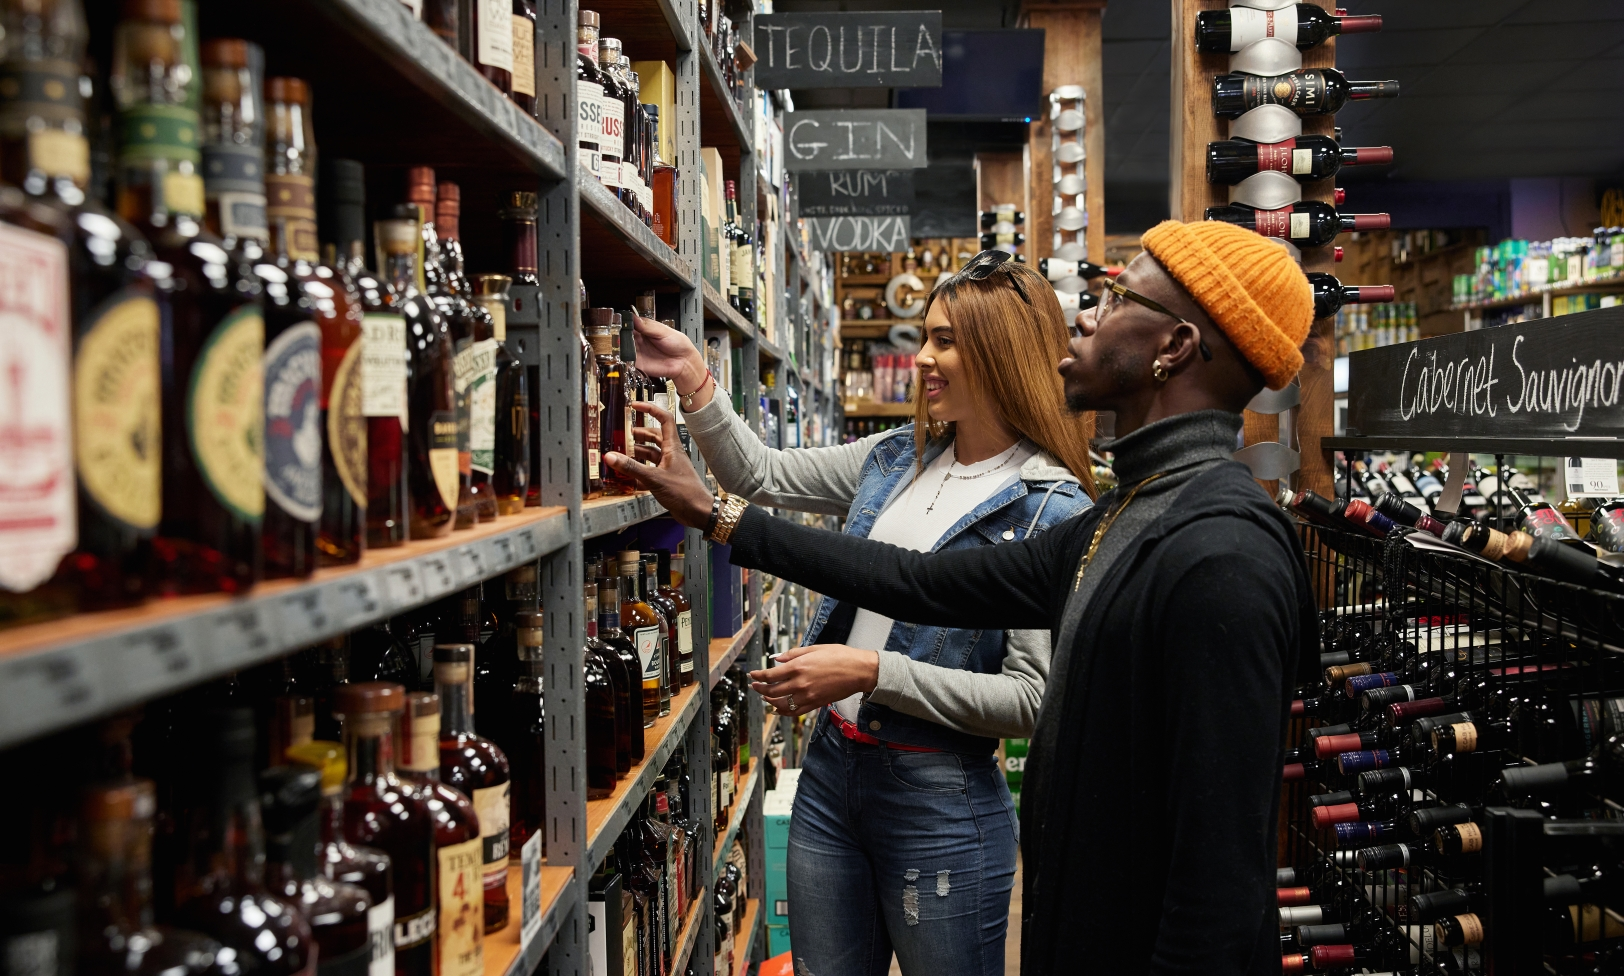 Two people browse shelves of liquor bottles at Capital Sprits